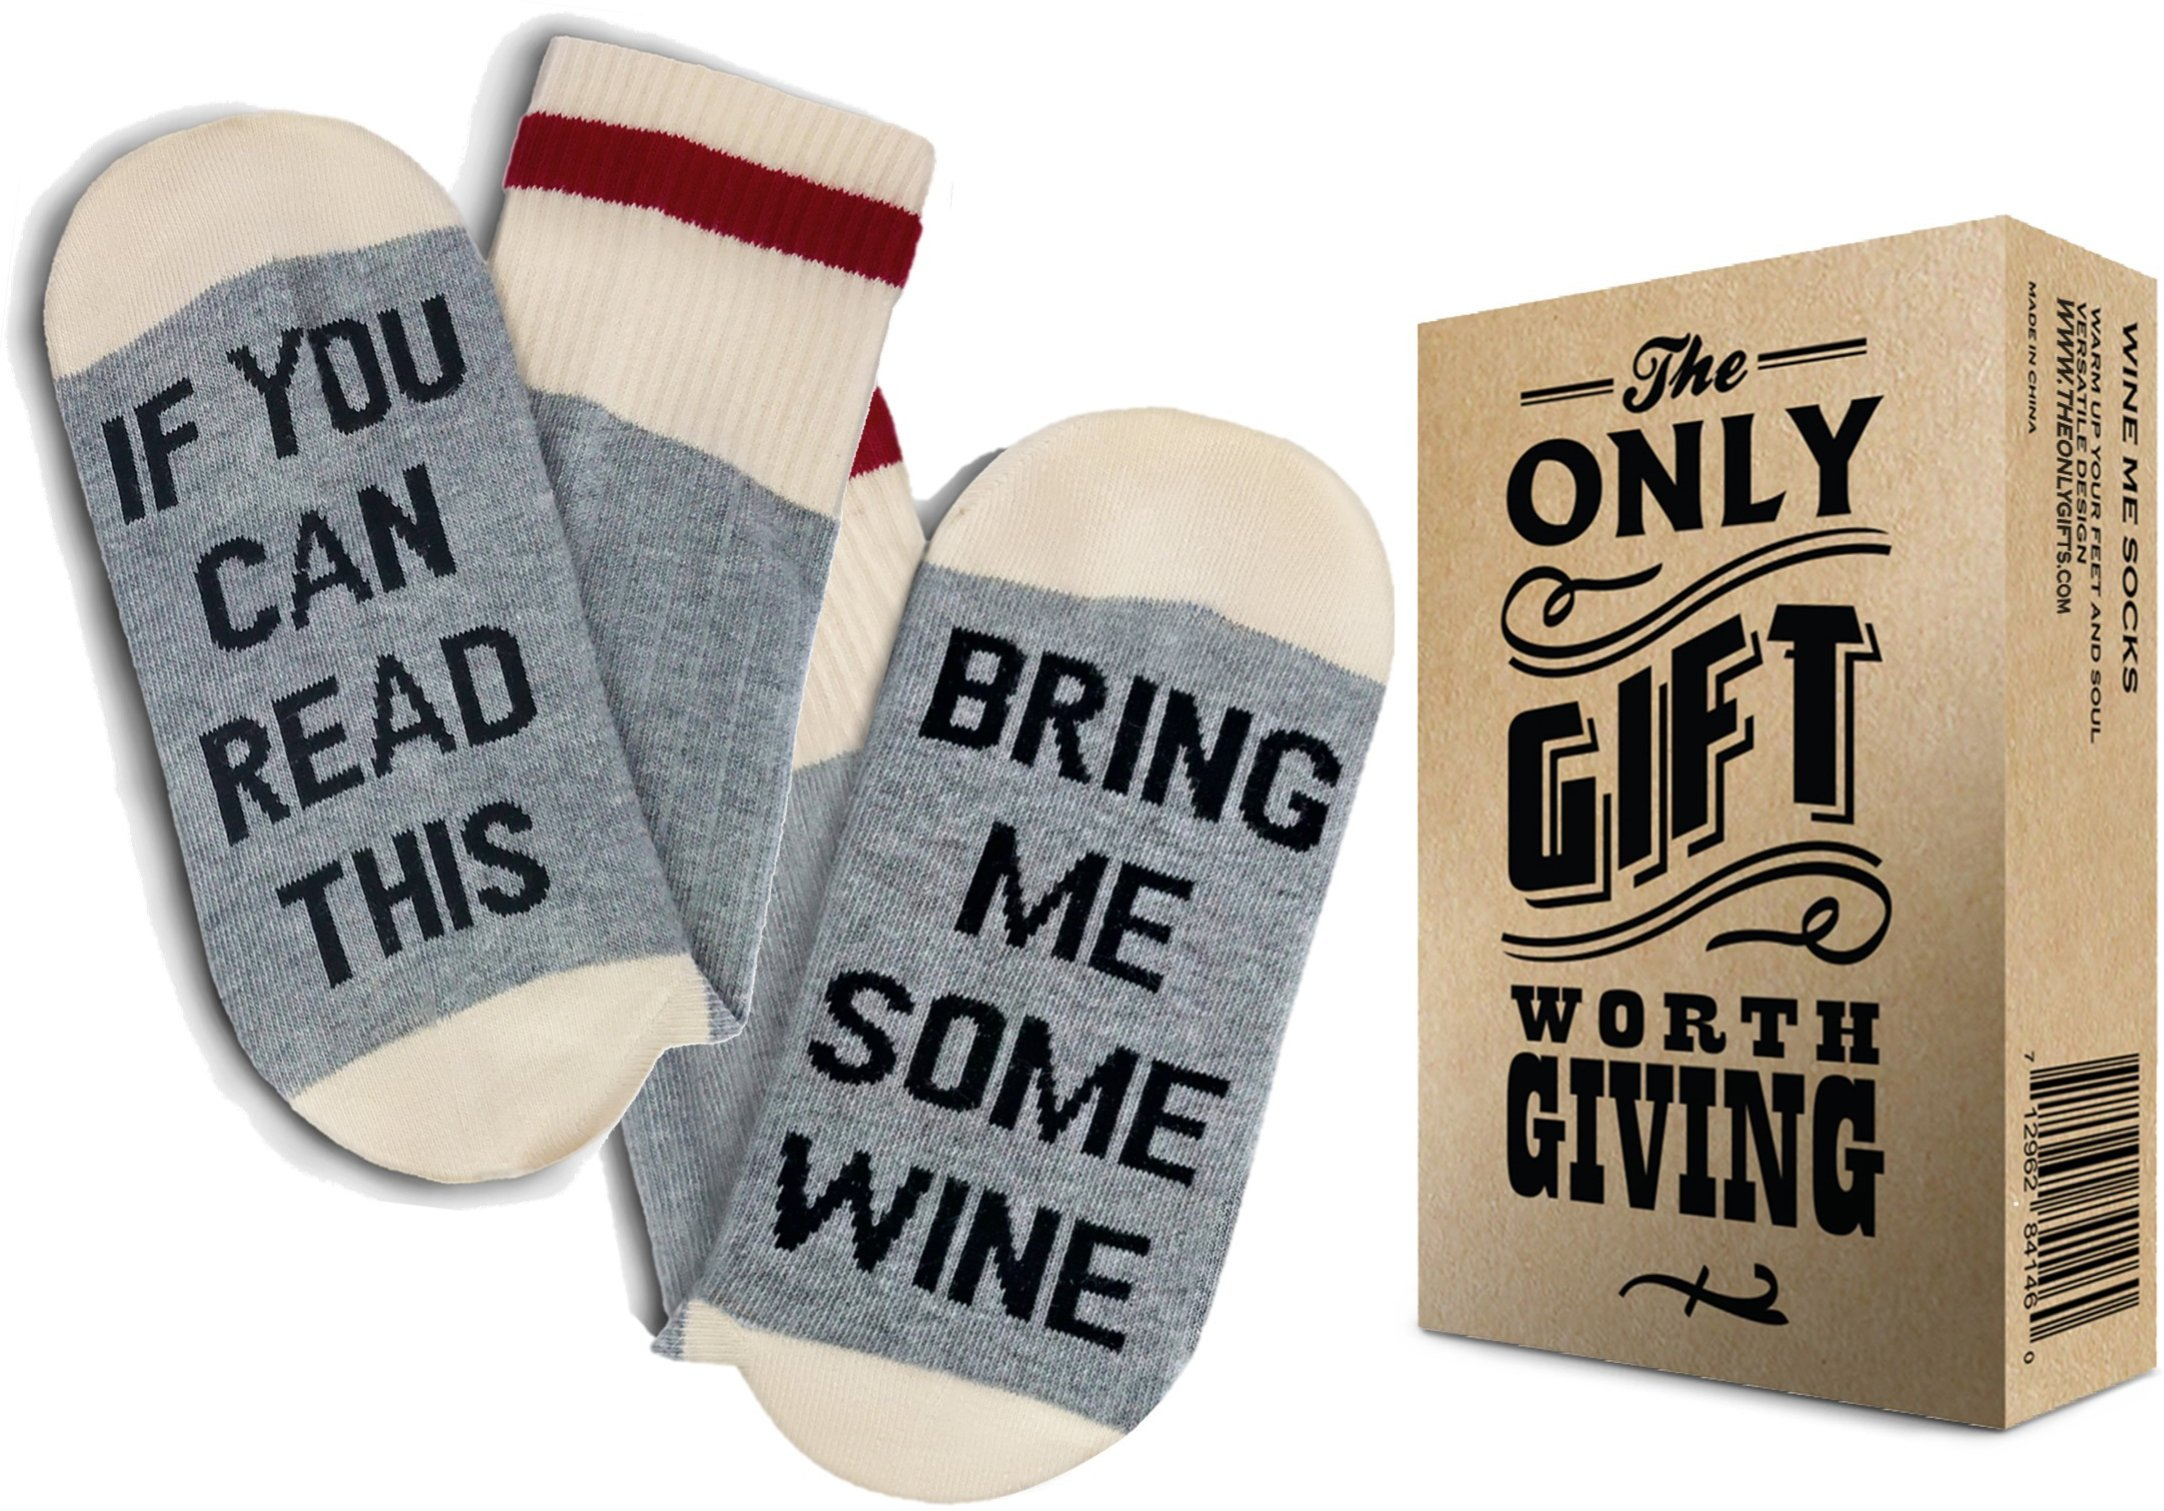 TheOnly Wine Gift Wine Socks - and Gift Box''If you can read this bring me some wine'' Perfect Christmas Gift for Wine Lovers, Birthdays, White Elephant, Mother Gift, Wife or Best Friend Wine Socks